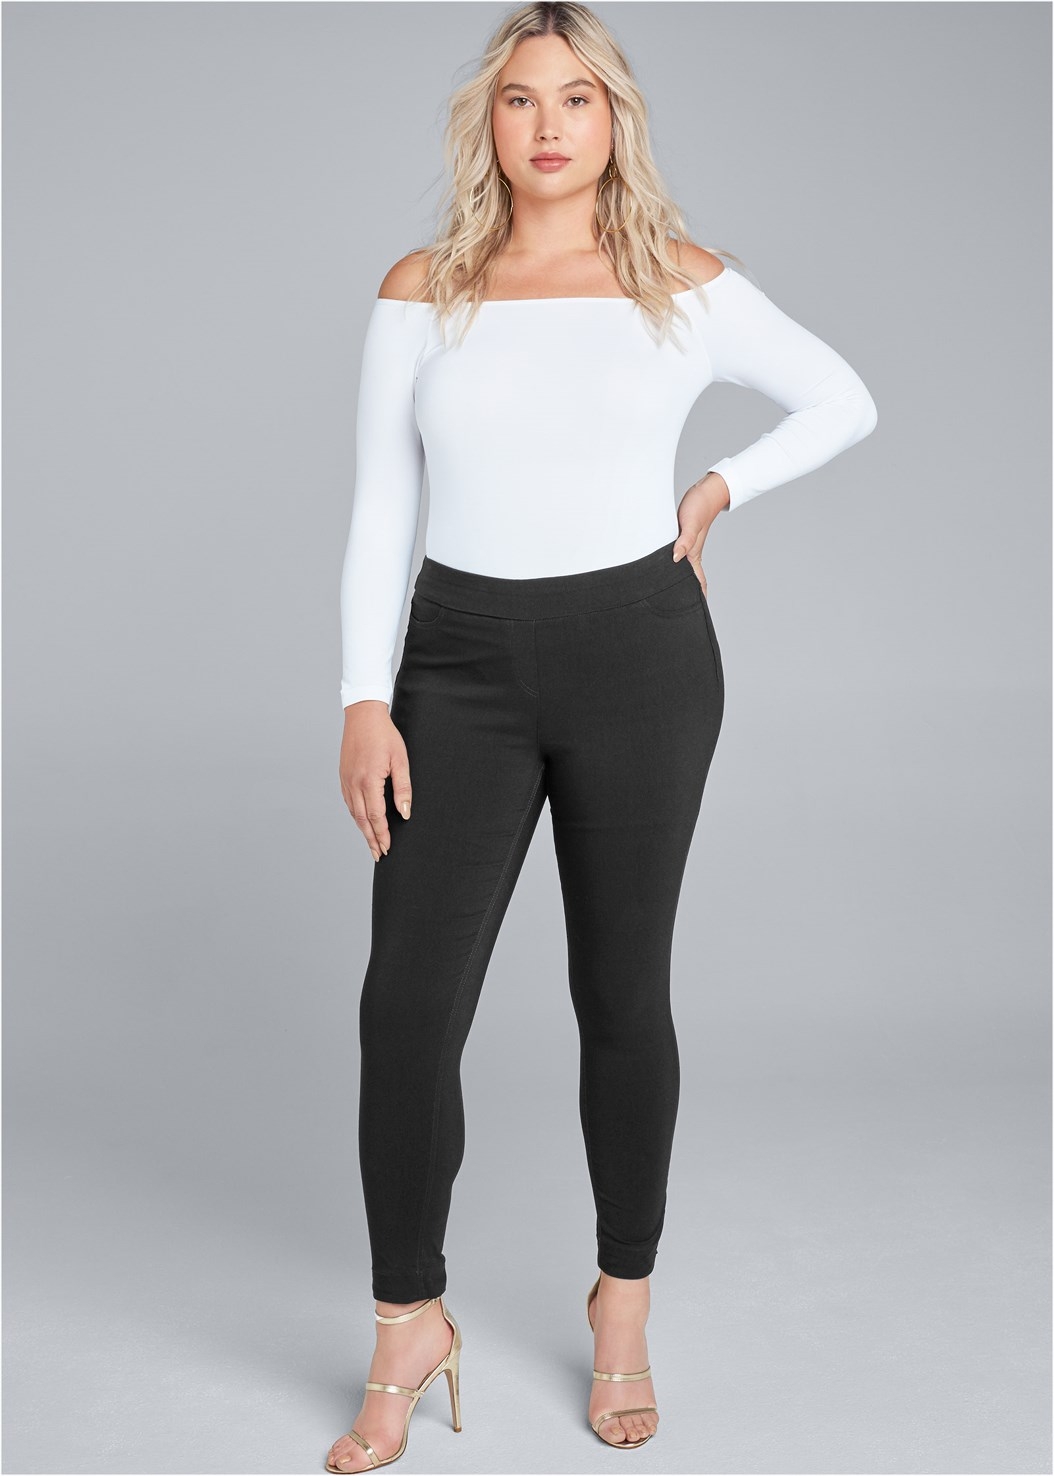 Mid Rise Slimming Stretch Jeggings,Off The Shoulder Top,Off The Shoulder Ring Top,Basic Cami Two Pack,High Heel Strappy Sandals